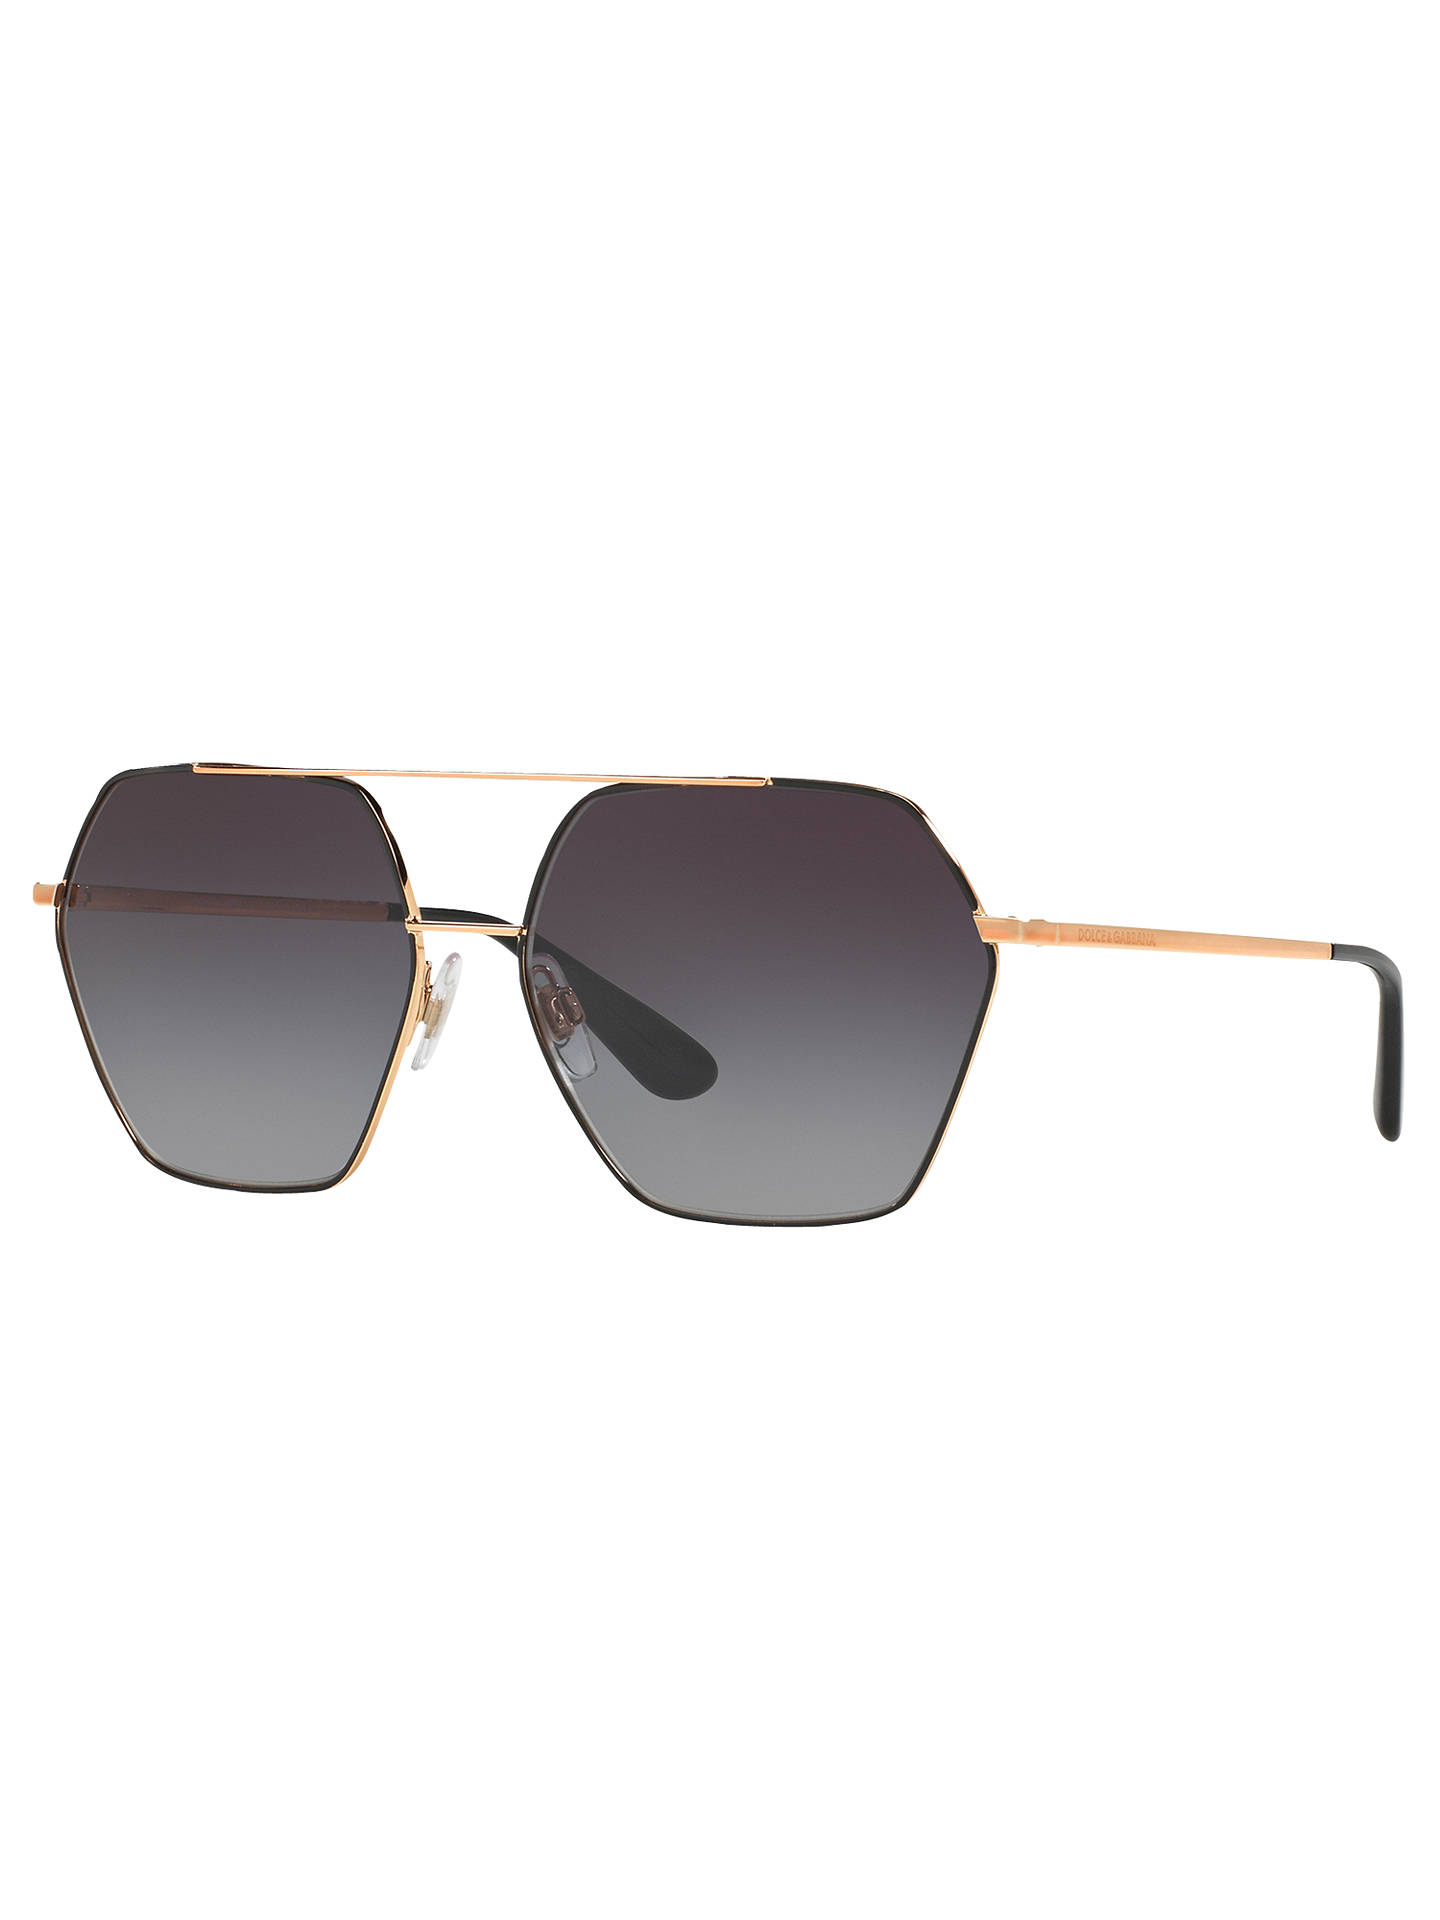 ed2fb17d36257 Dolce   Gabbana DG2157 Hexagonal Sunglasses at John Lewis   Partners